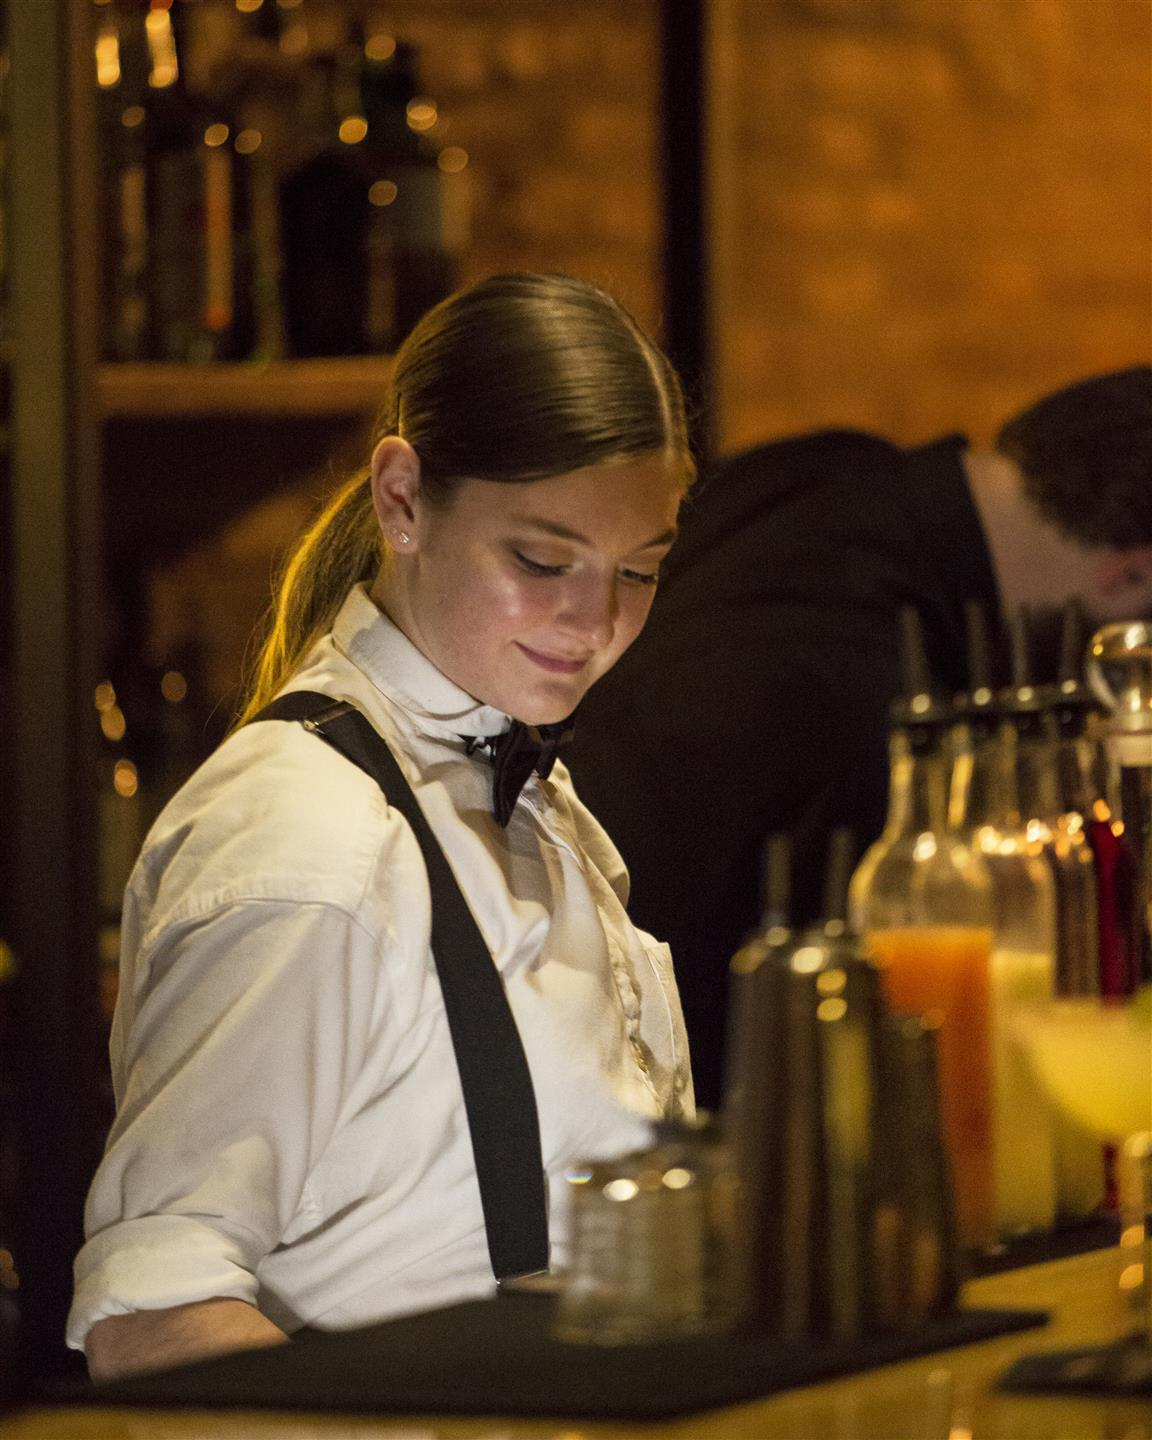 a bartender preparing drinks